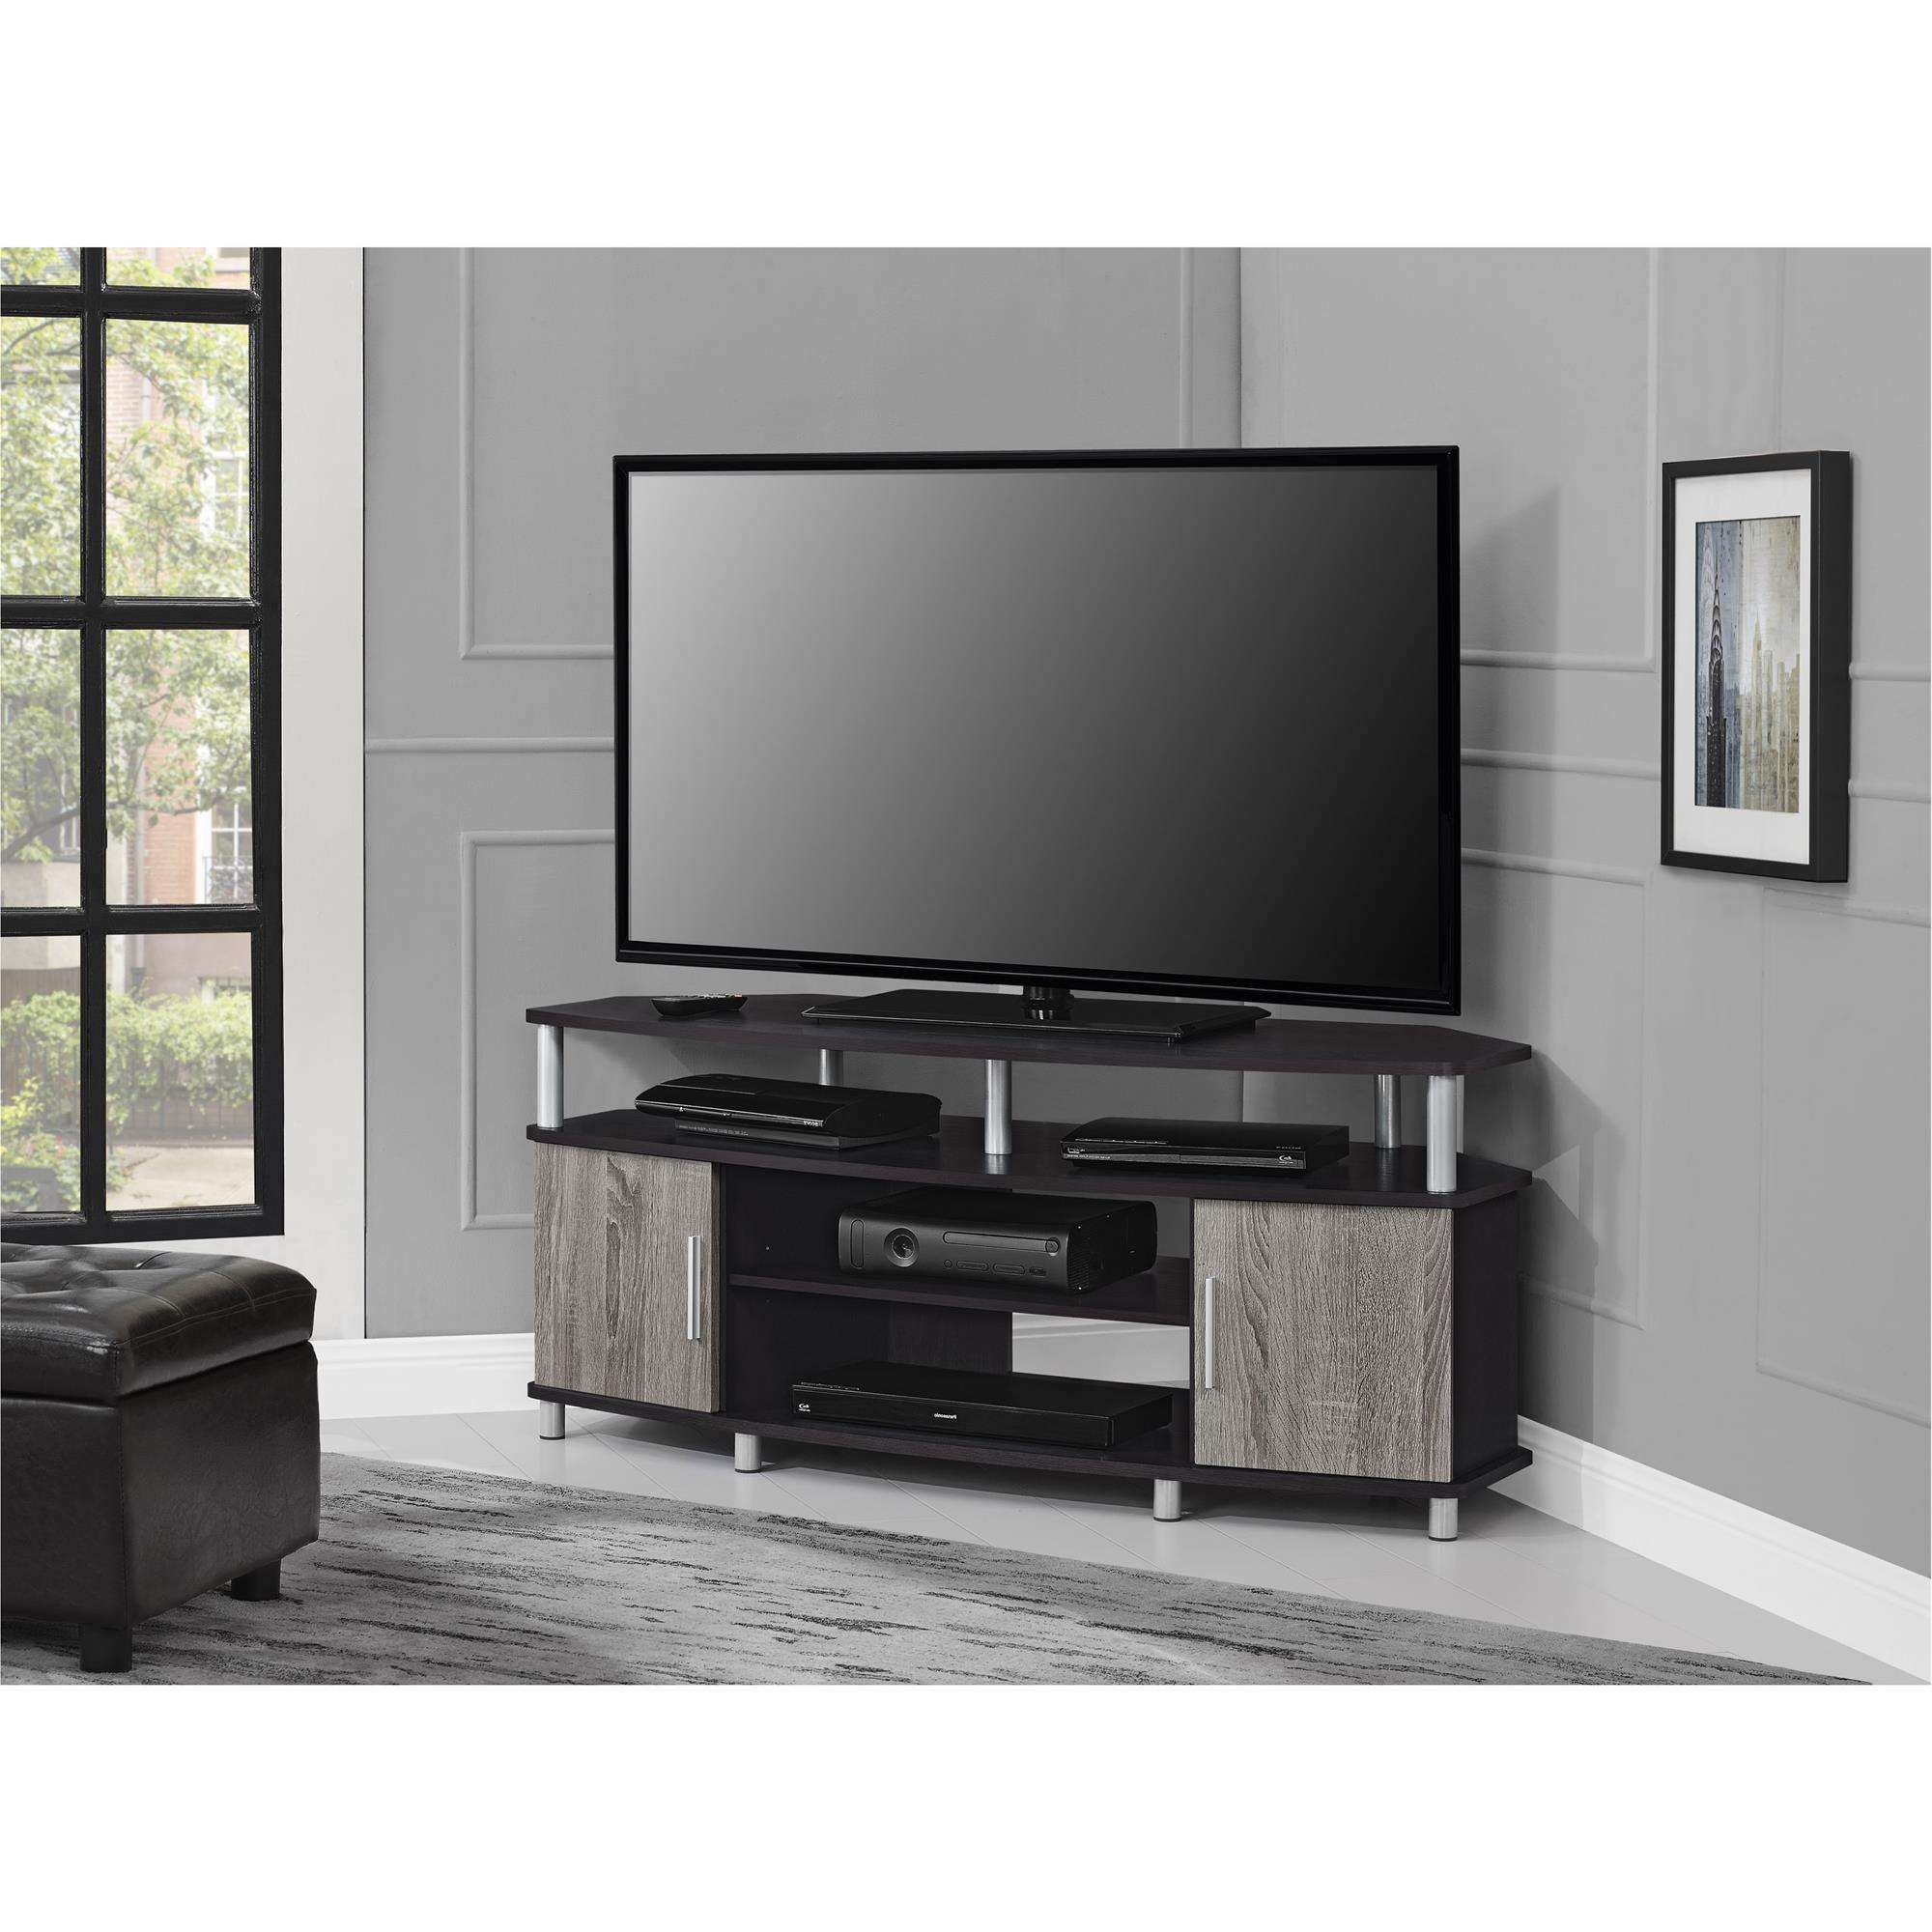 Tempting Your House Its Good Idea Together With Your Life In Tv With Corner Tv Stands For 46 Inch Flat Screen (View 11 of 15)